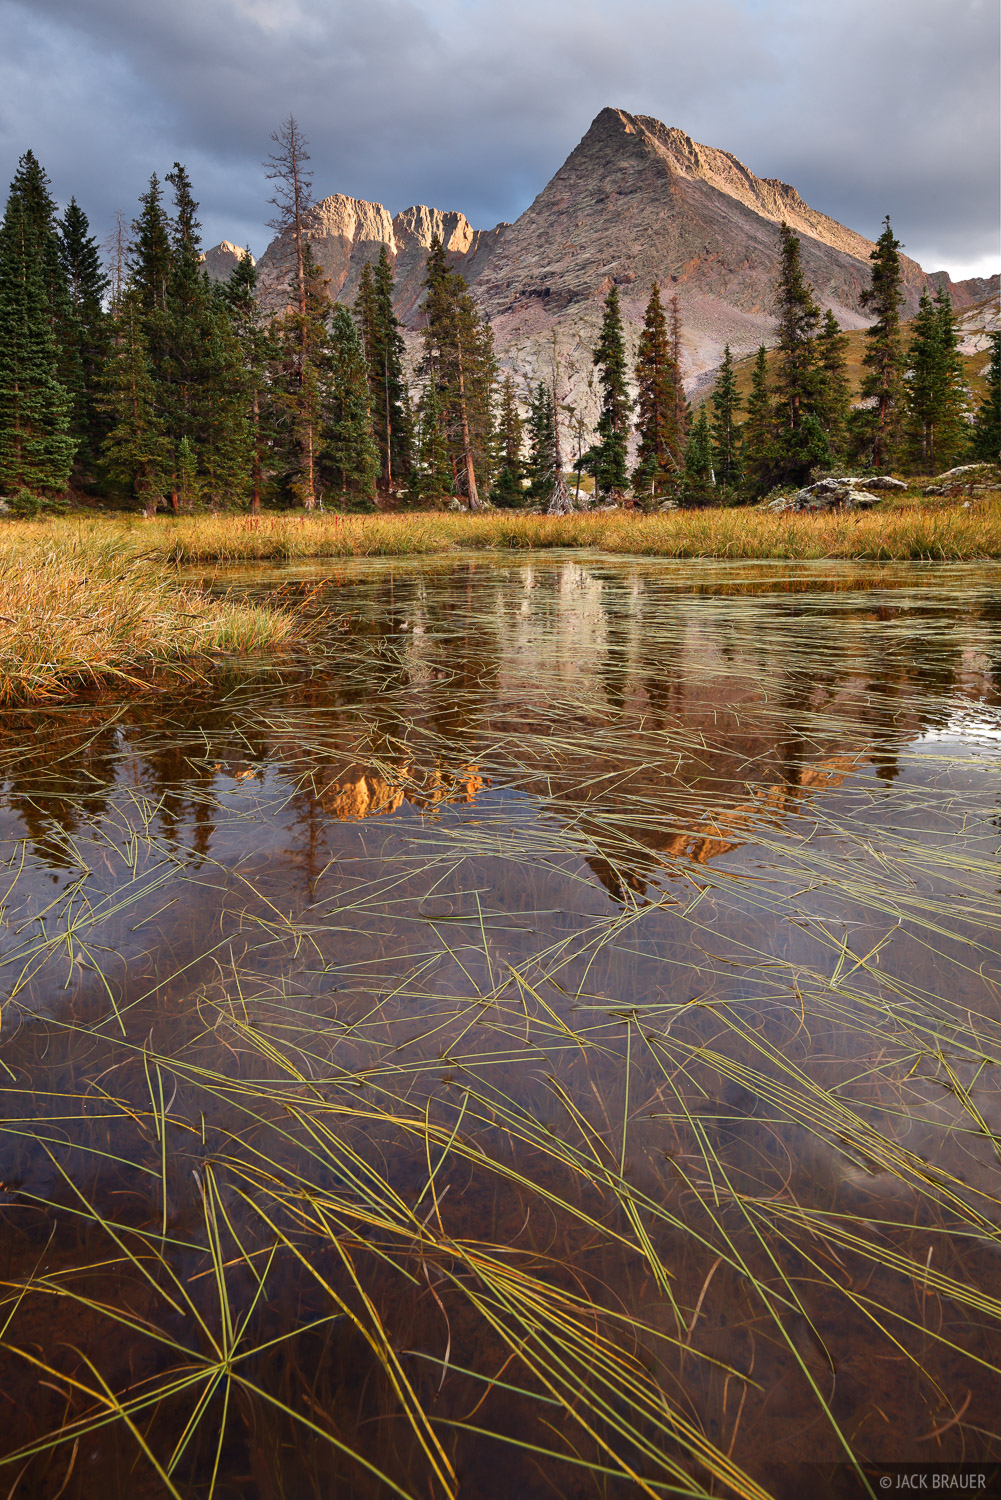 Trinity Peaks reflect in a grass-filled pond in the Weminuche Wilderness.